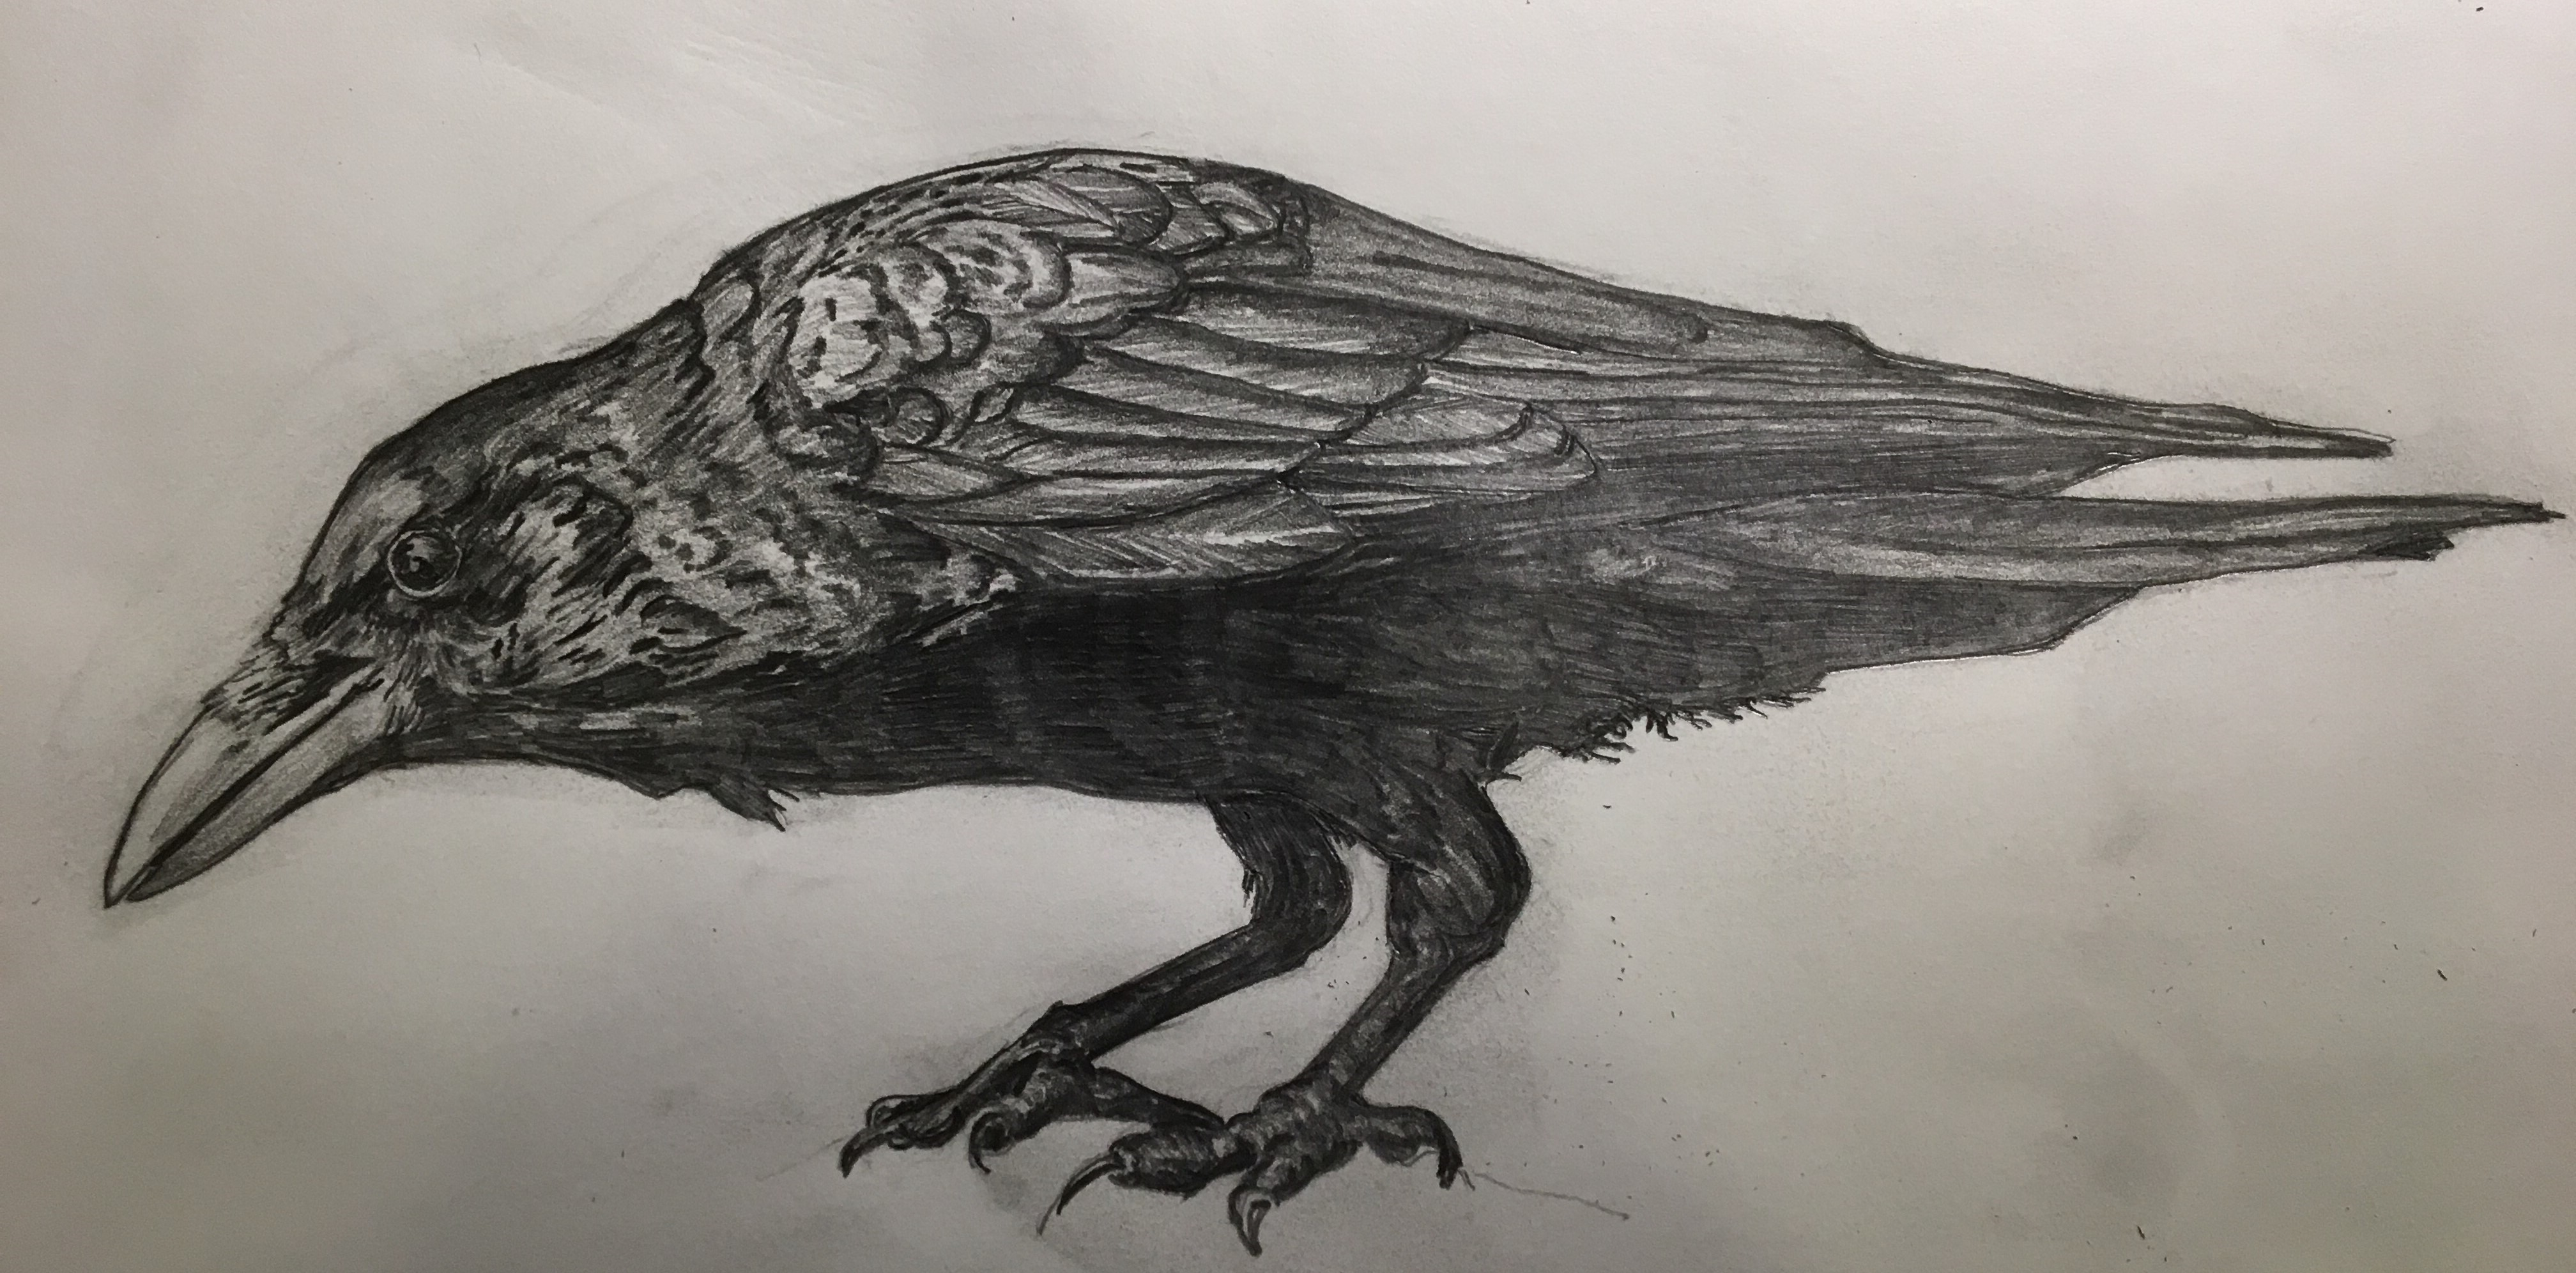 Sketch of Common Raven by Todd White